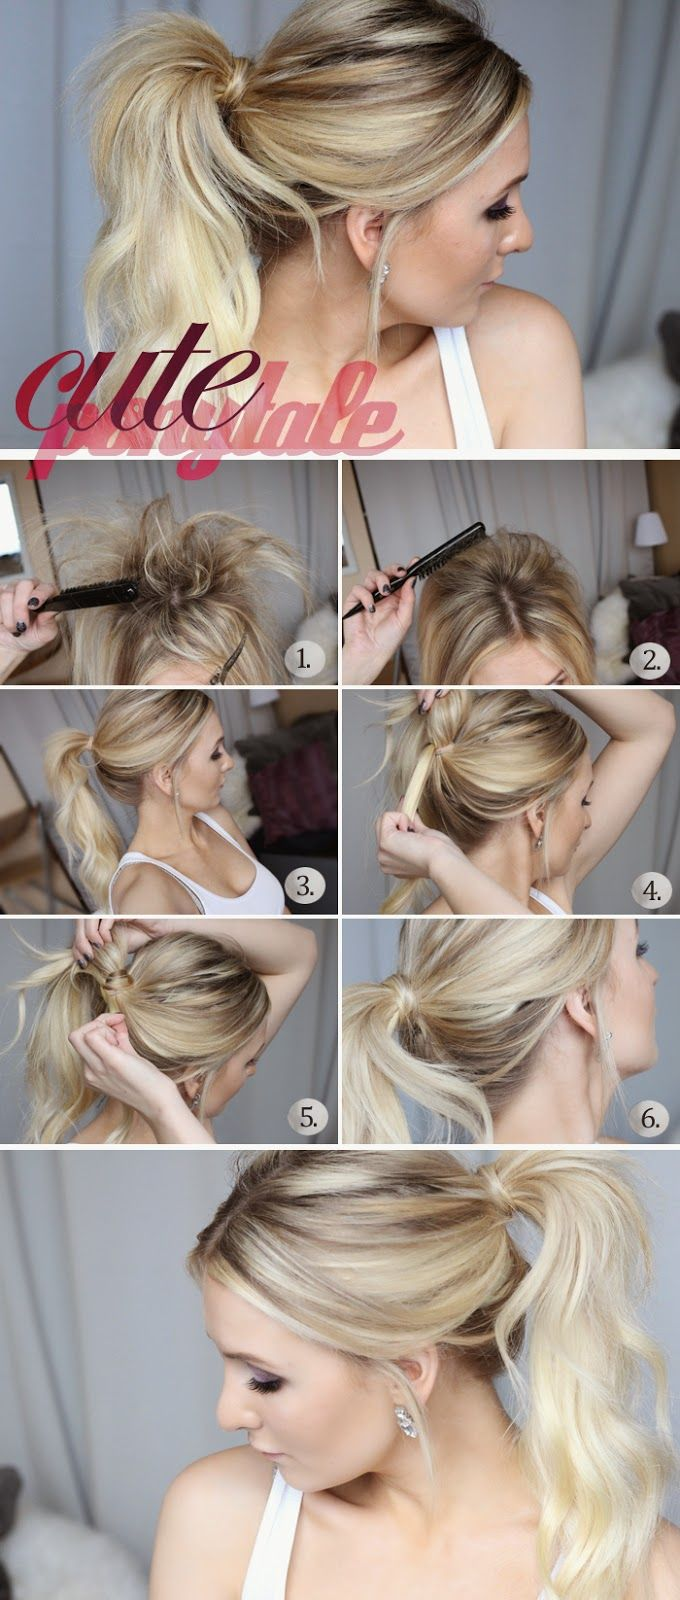 How to chic cute ponytail tutorial peinados pinterest